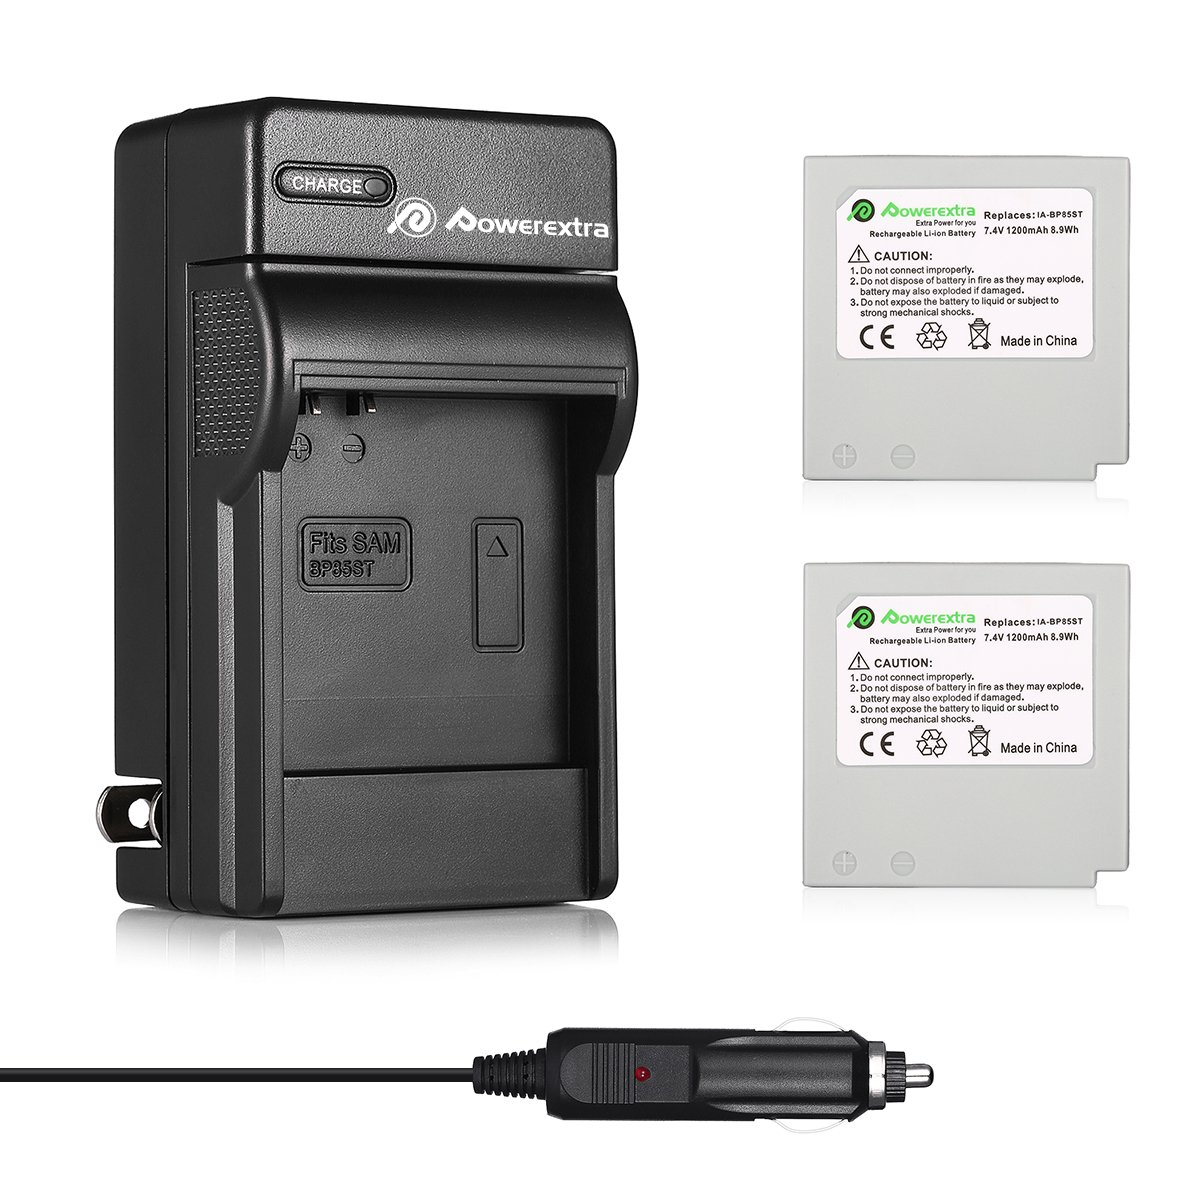 2x Replacement IA-BP85ST Battery & Charger Compatible with Samsung BP85ST, IA-BP85NF, VP-HMX08, VP-MX10, VP-MX20, HMX-H100, HMX-H104, HMX-H105, HMX-H106, SC-HMX10, SC-HMX20C, SC-MX10, SC-MX20 SMX-F30 by Powerextra